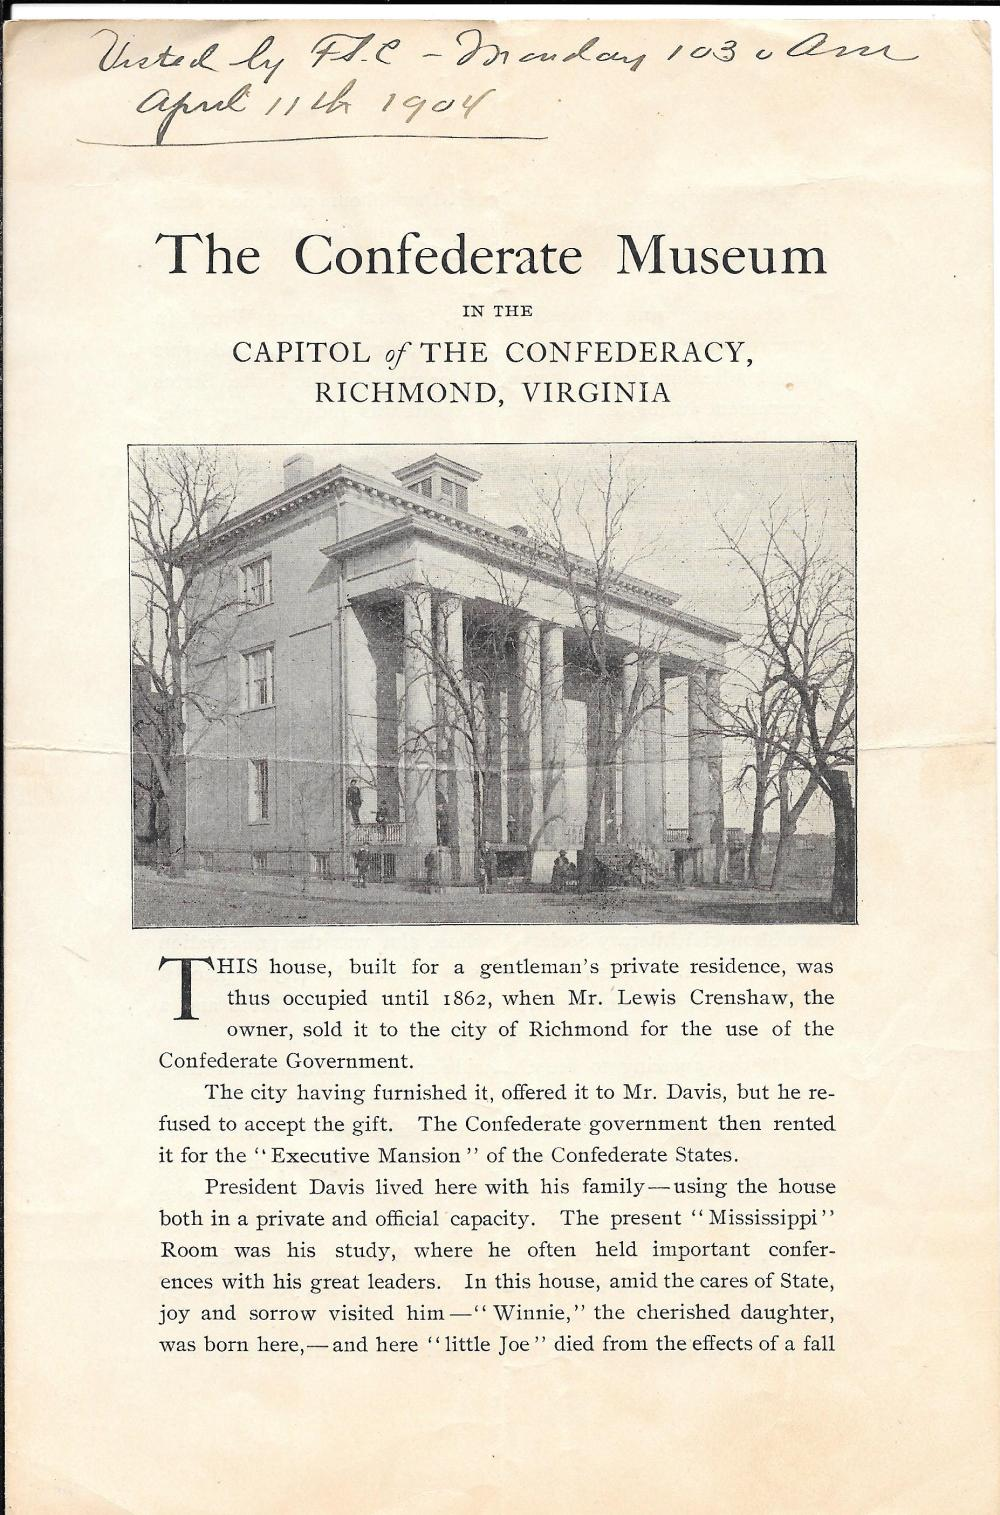 1902 guide to the Confederate Museum, Richmond